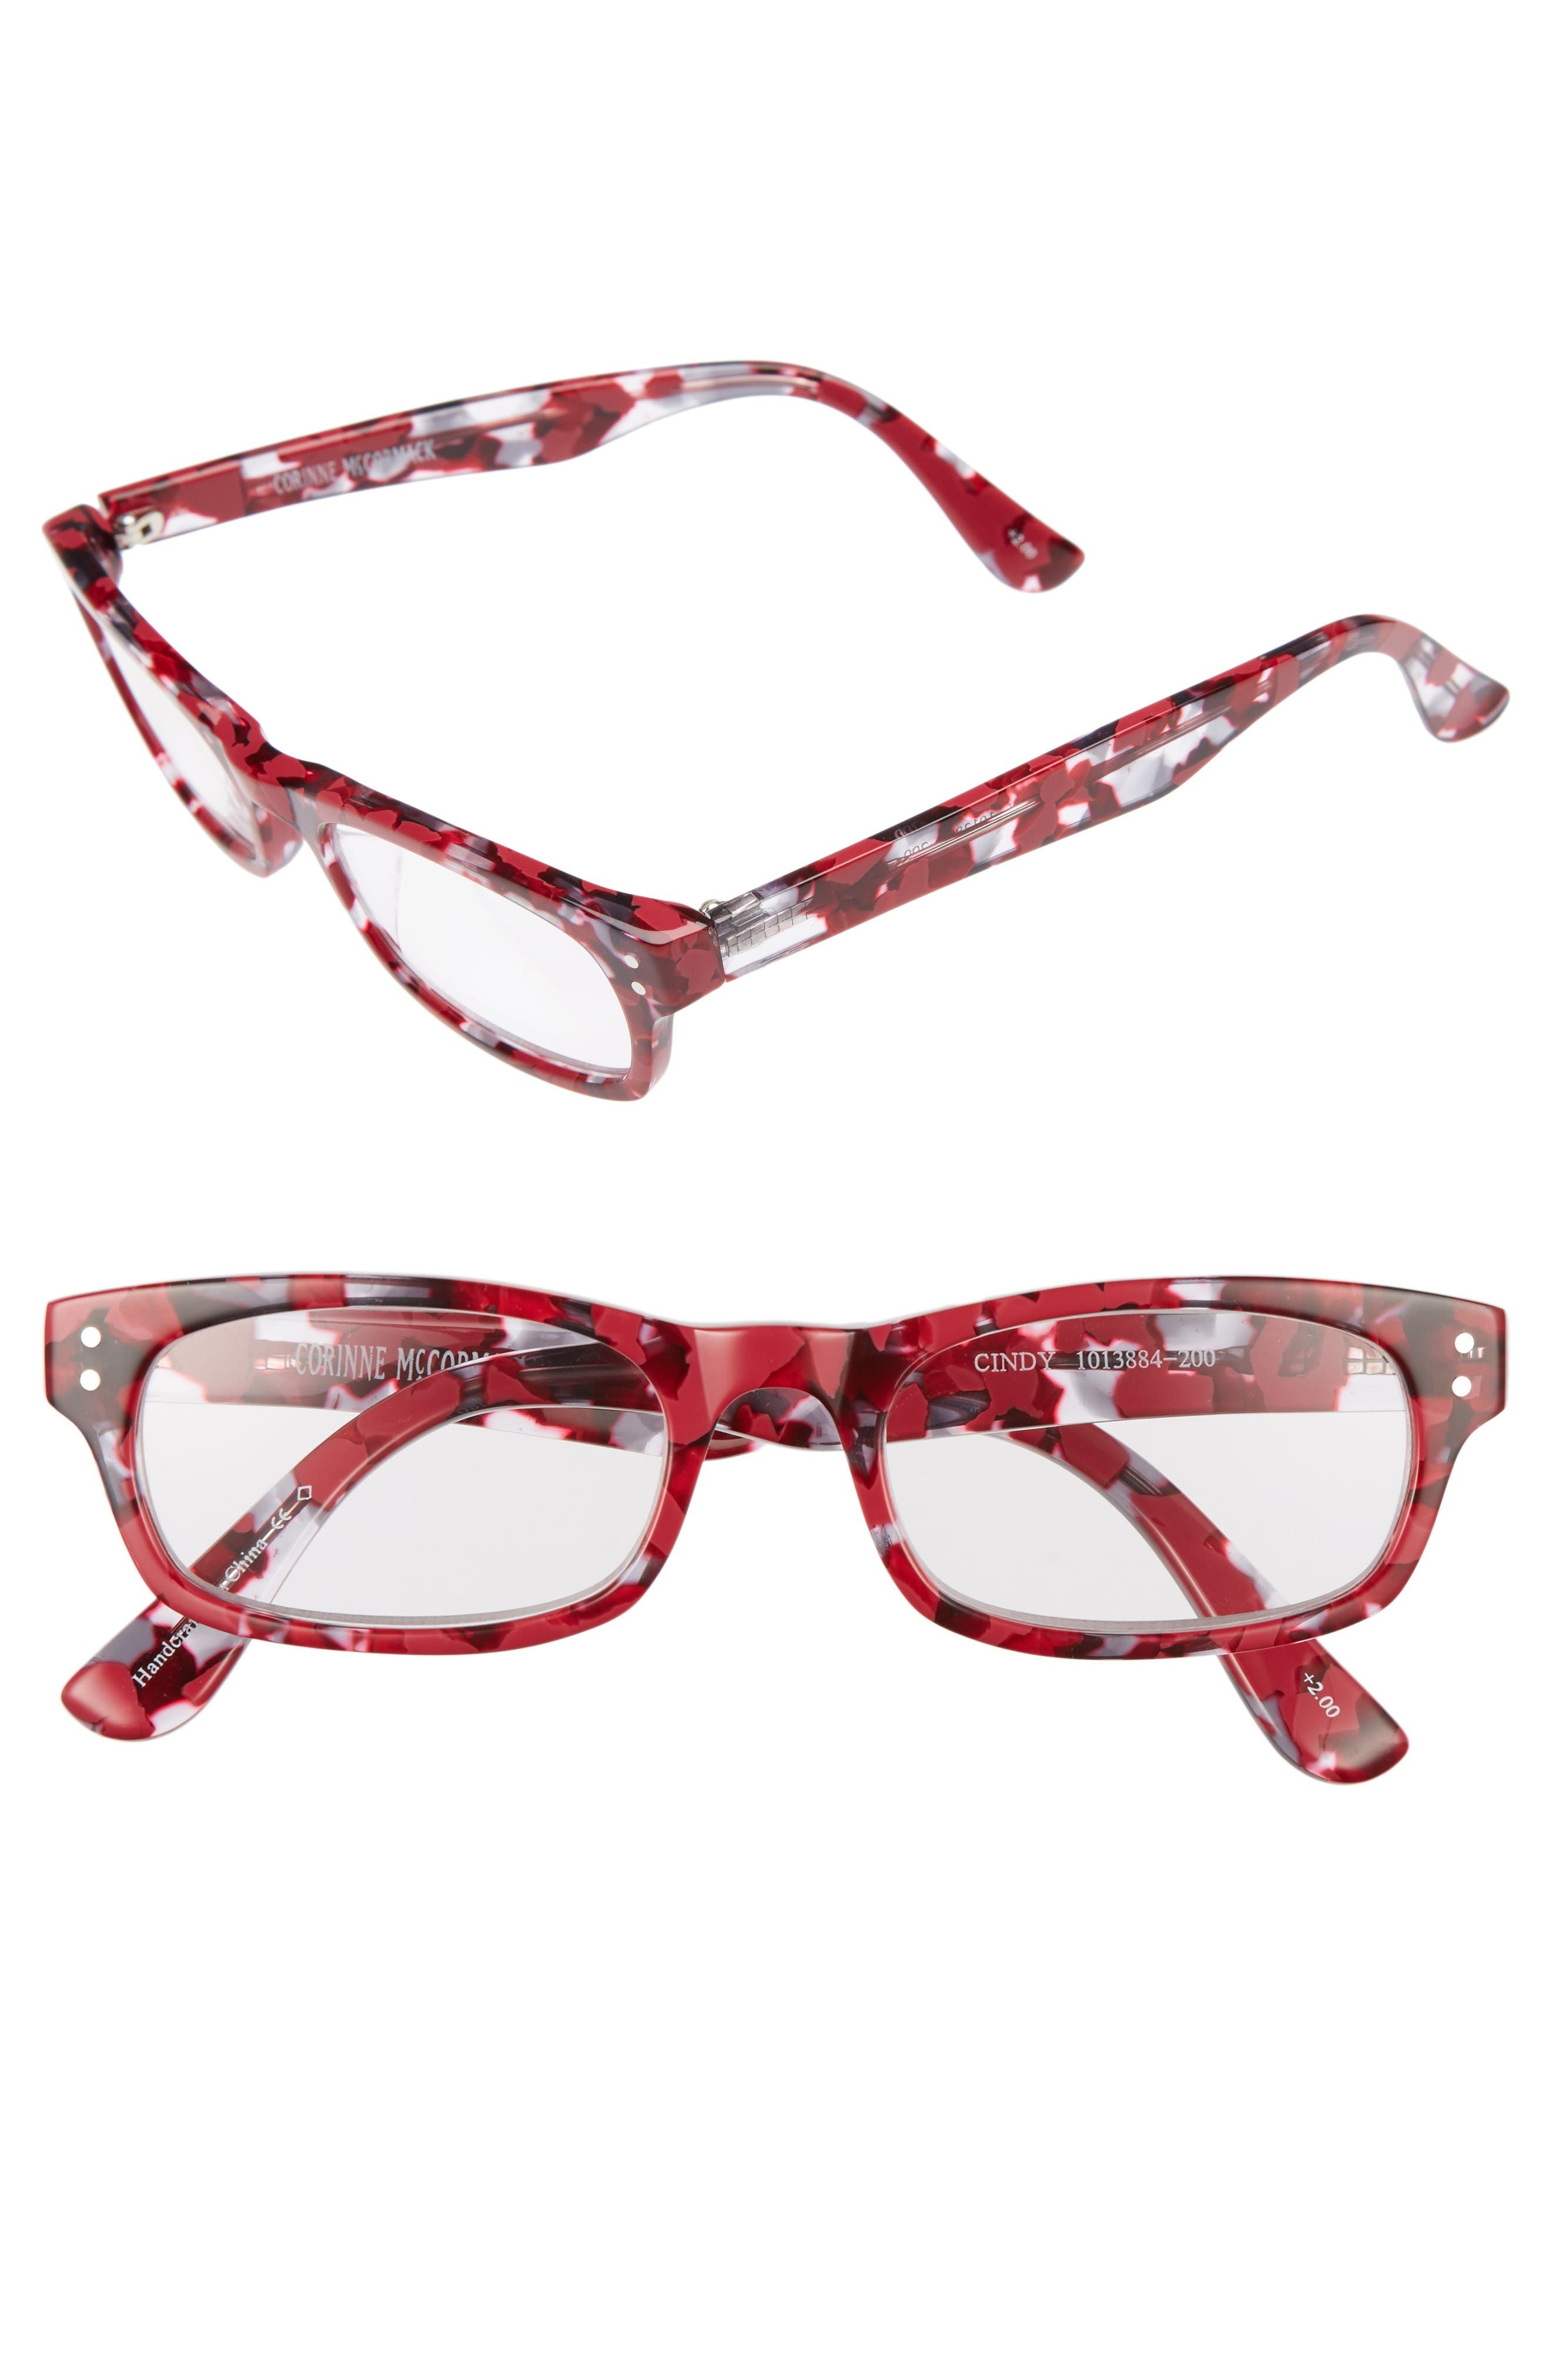 Cindy 50mm Reading Glasses,                             Main thumbnail 1, color,                             Berry